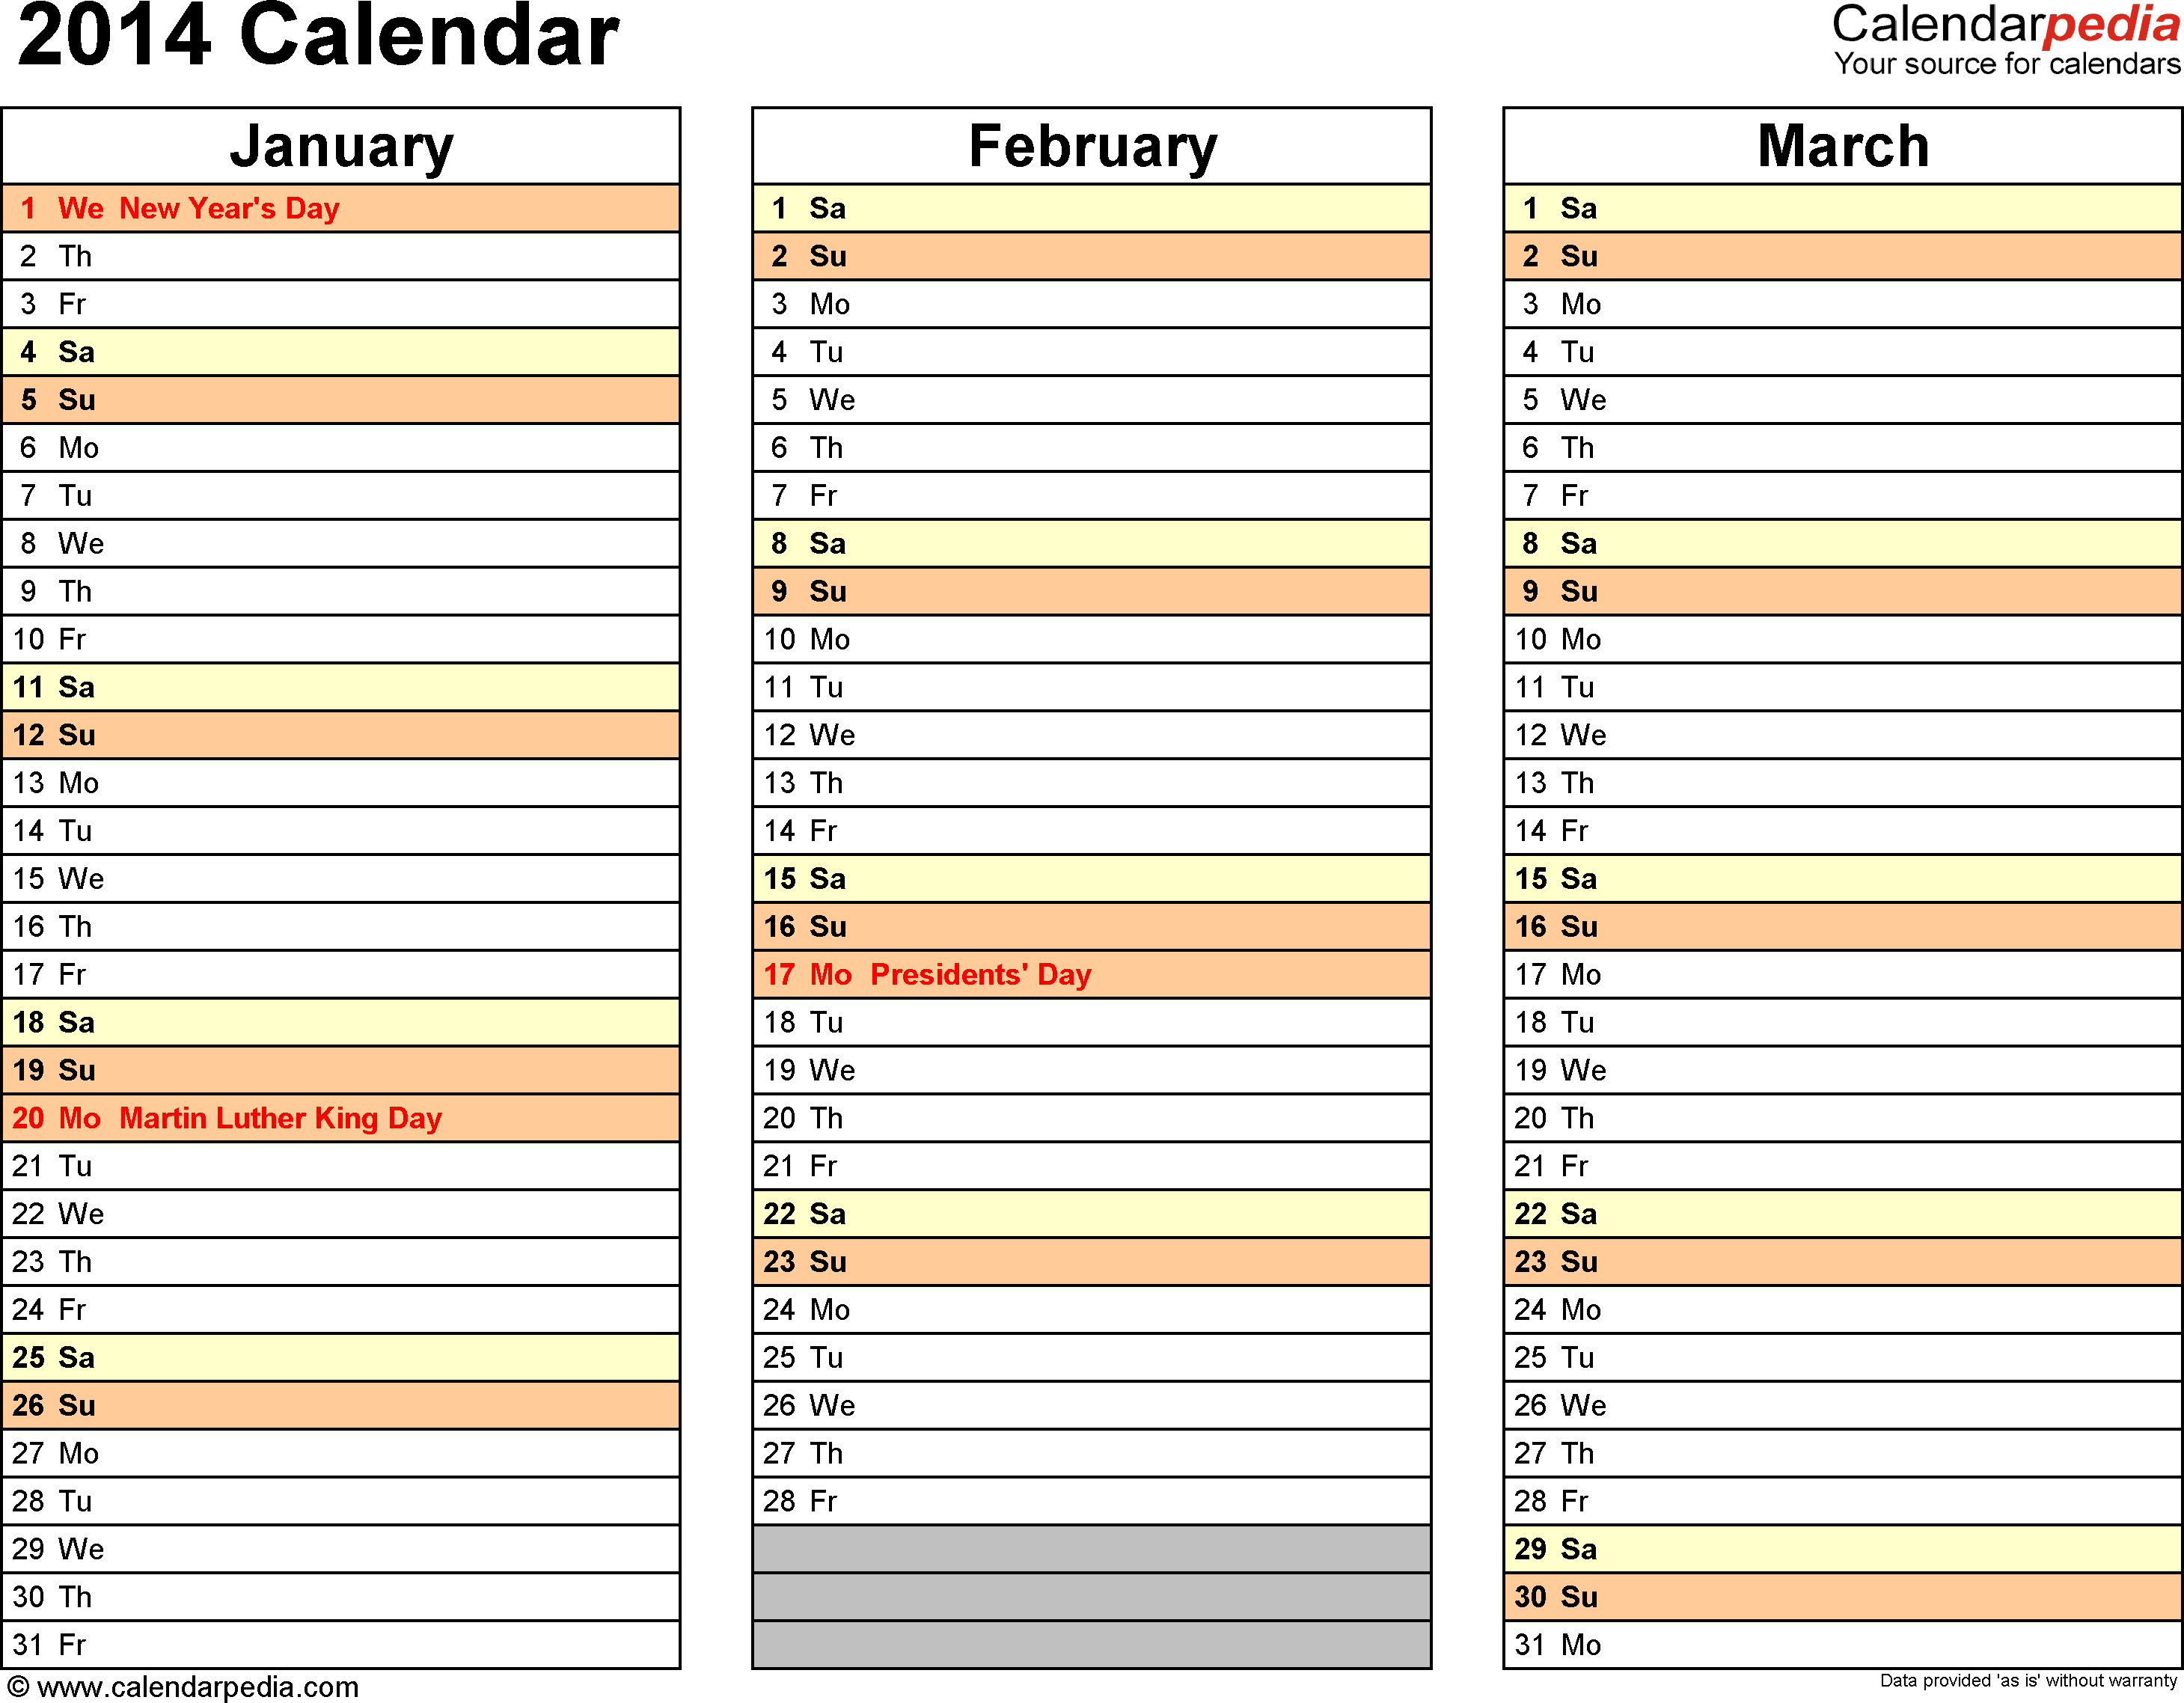 Template 6: 2014 Calendar for Excel, landscape orientation, months horizontally, 4 pages